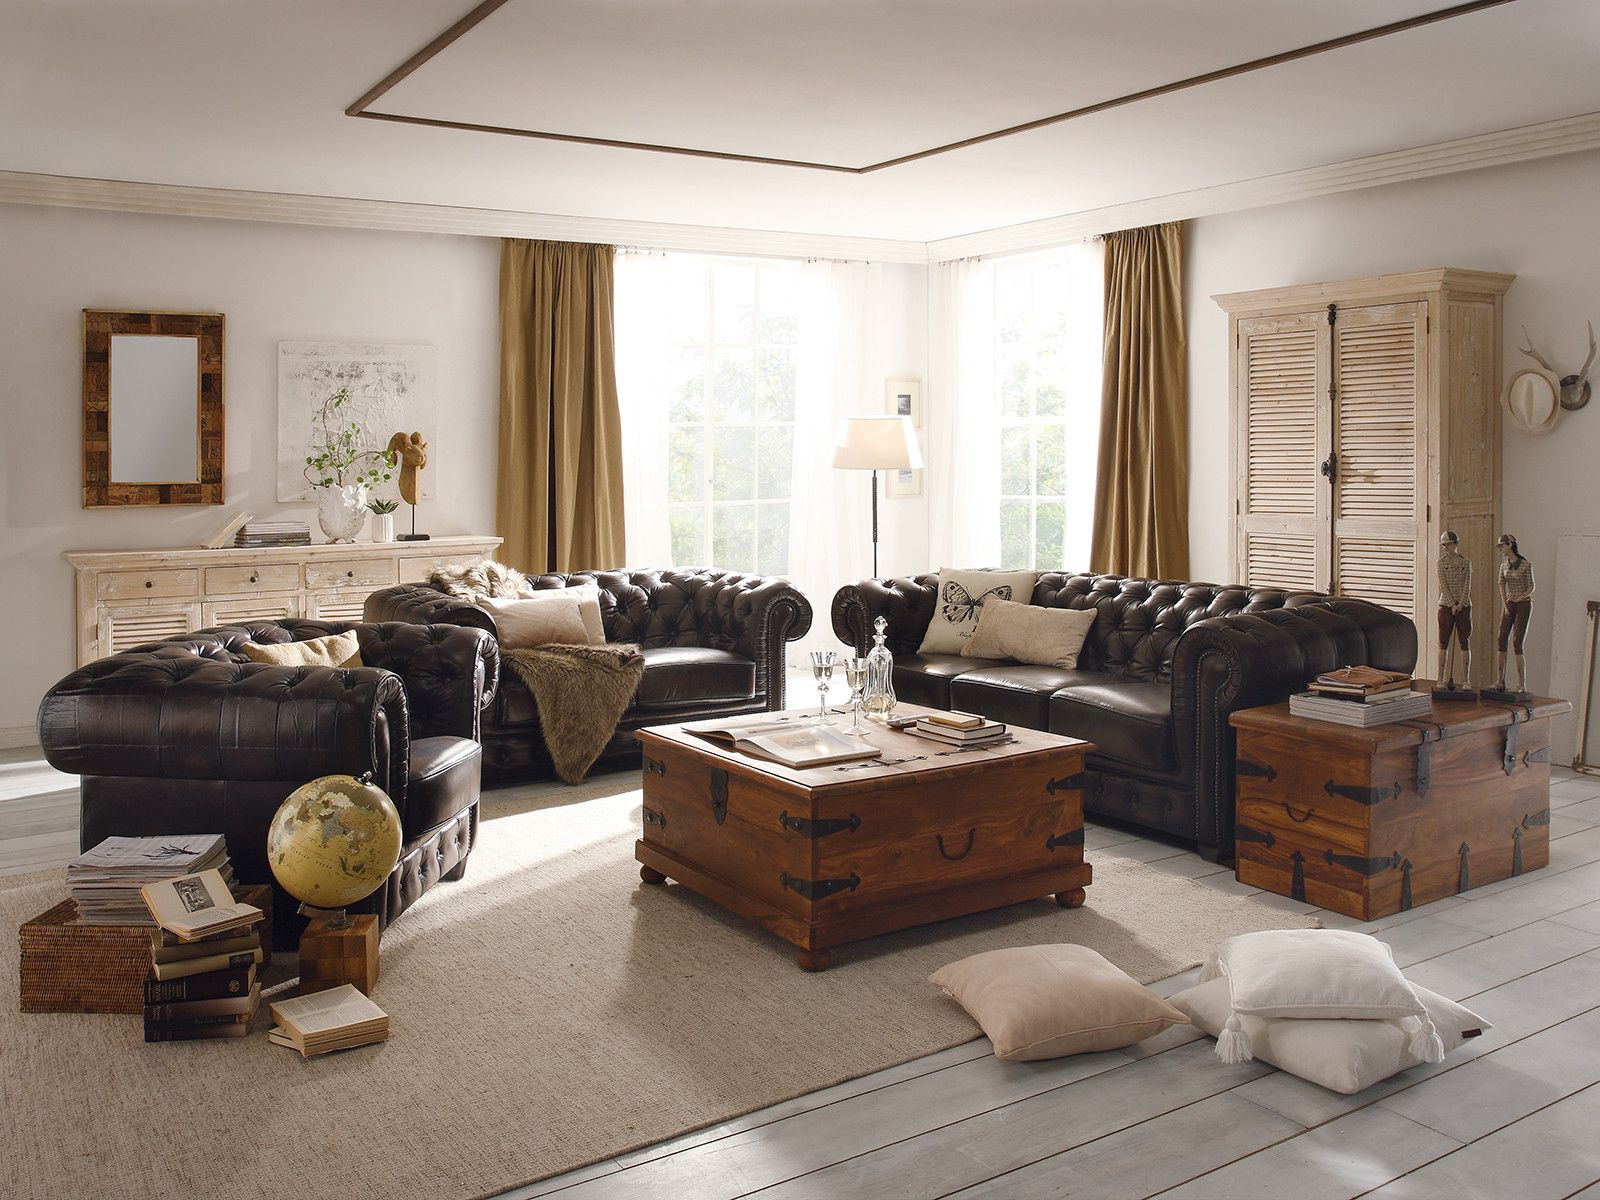 Wohnzimmer Mit Chesterfield Sofa Skórzane Sofy Chesterfield Indoor Bar In 2019 Chesterfield